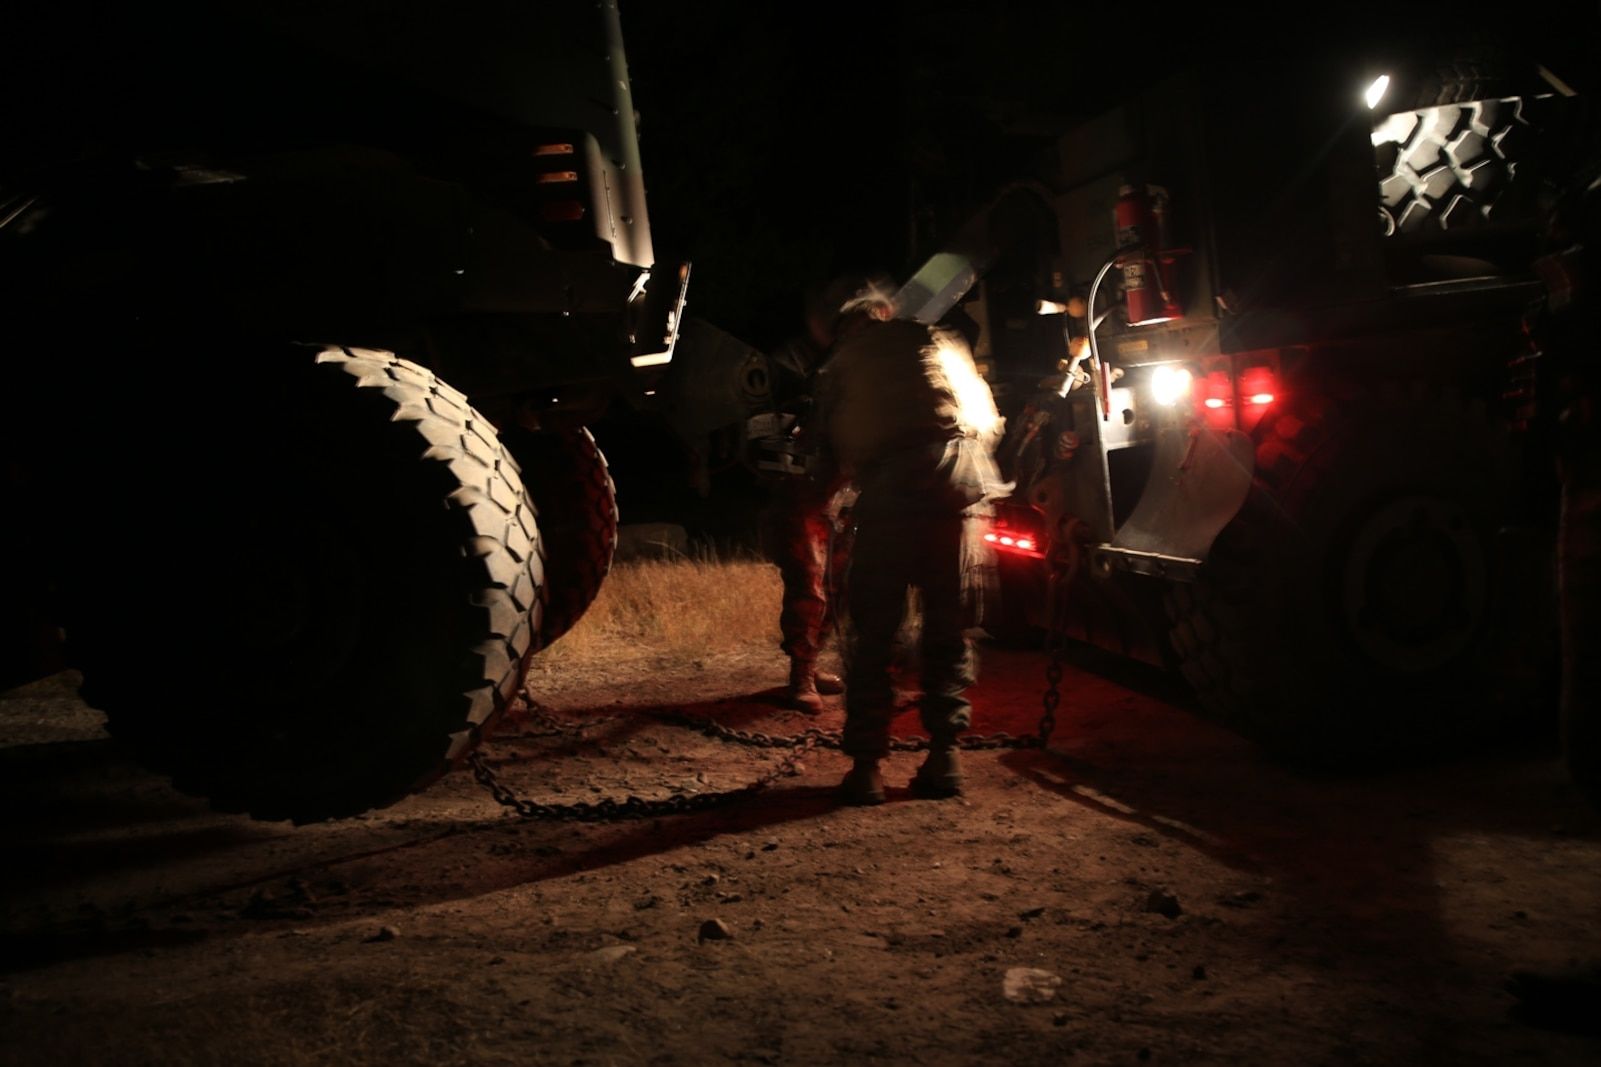 U.S. Marines Cpl. Jesse Gunderson and Lance Cpl. Juan Cerda attach tow cables from the AMK-36 wrecker vehicle to a broken Medium Tactical Vehicle Replacement at Mountain Warfare Training Center, Bridgeport, Calif., Oct. 23, 2016. The AMK-36 wrecker recovery vehicle's heavy tow capability made it possible for the Marines to get the immobile MTVR back down to the base of the mountain. Gunderson, a wrecker operator and Cerda, a motor transportation technician, are both with Combat Logistics Battalion 15, 1st Marine Logistics Group. (U.S. Marine Corps photo by Lance Cpl. Austin Mealy)